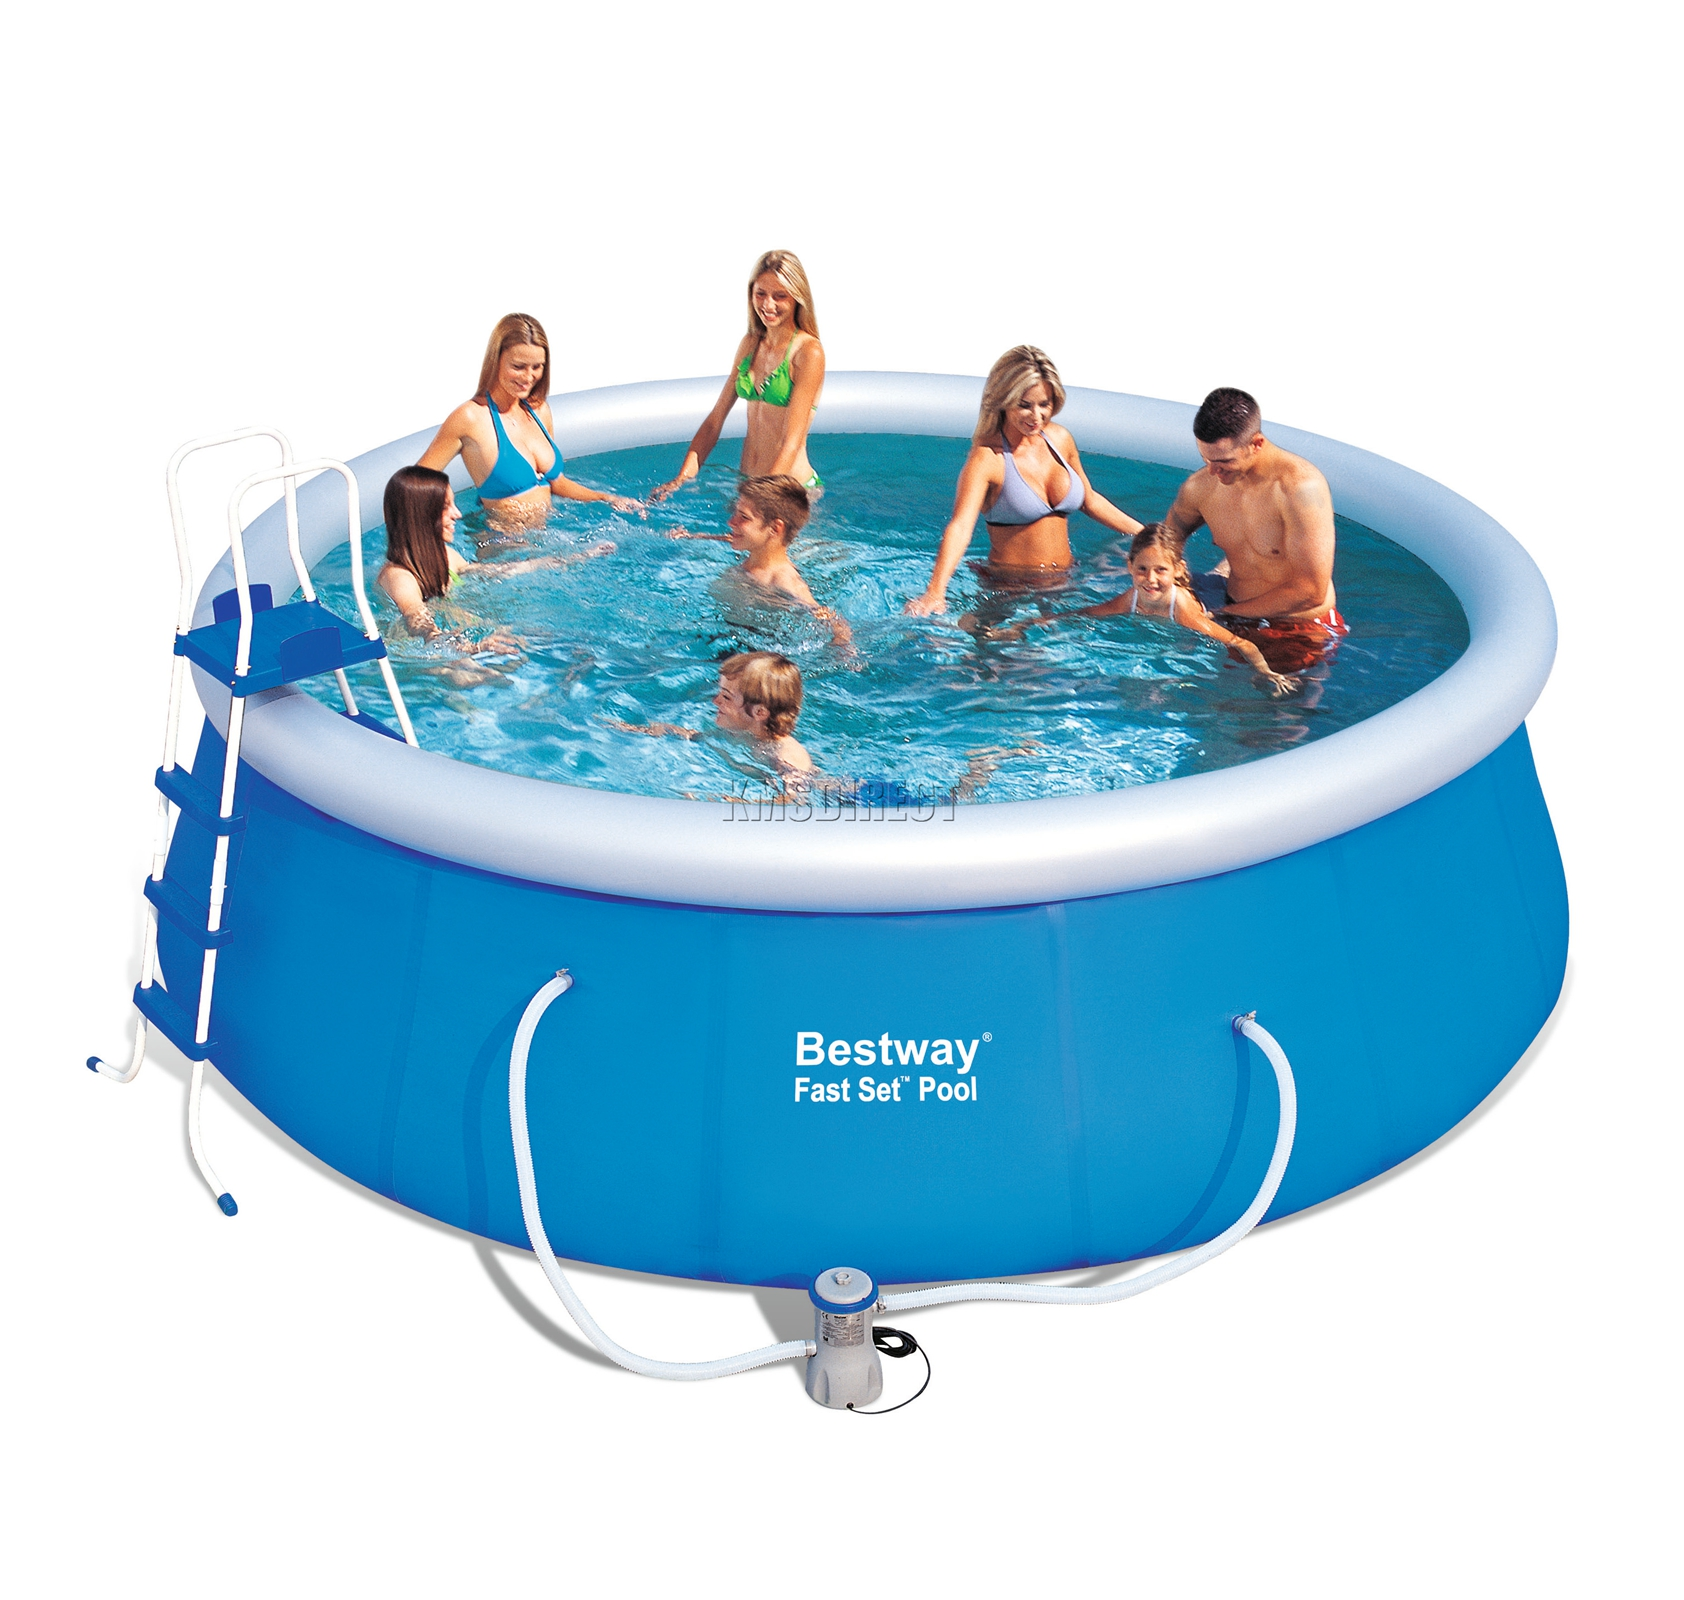 Pool Pumpe Anschließen Anleitung Bestway Bestway Fast Set Swimming Pool Round Inflatable 15ft X